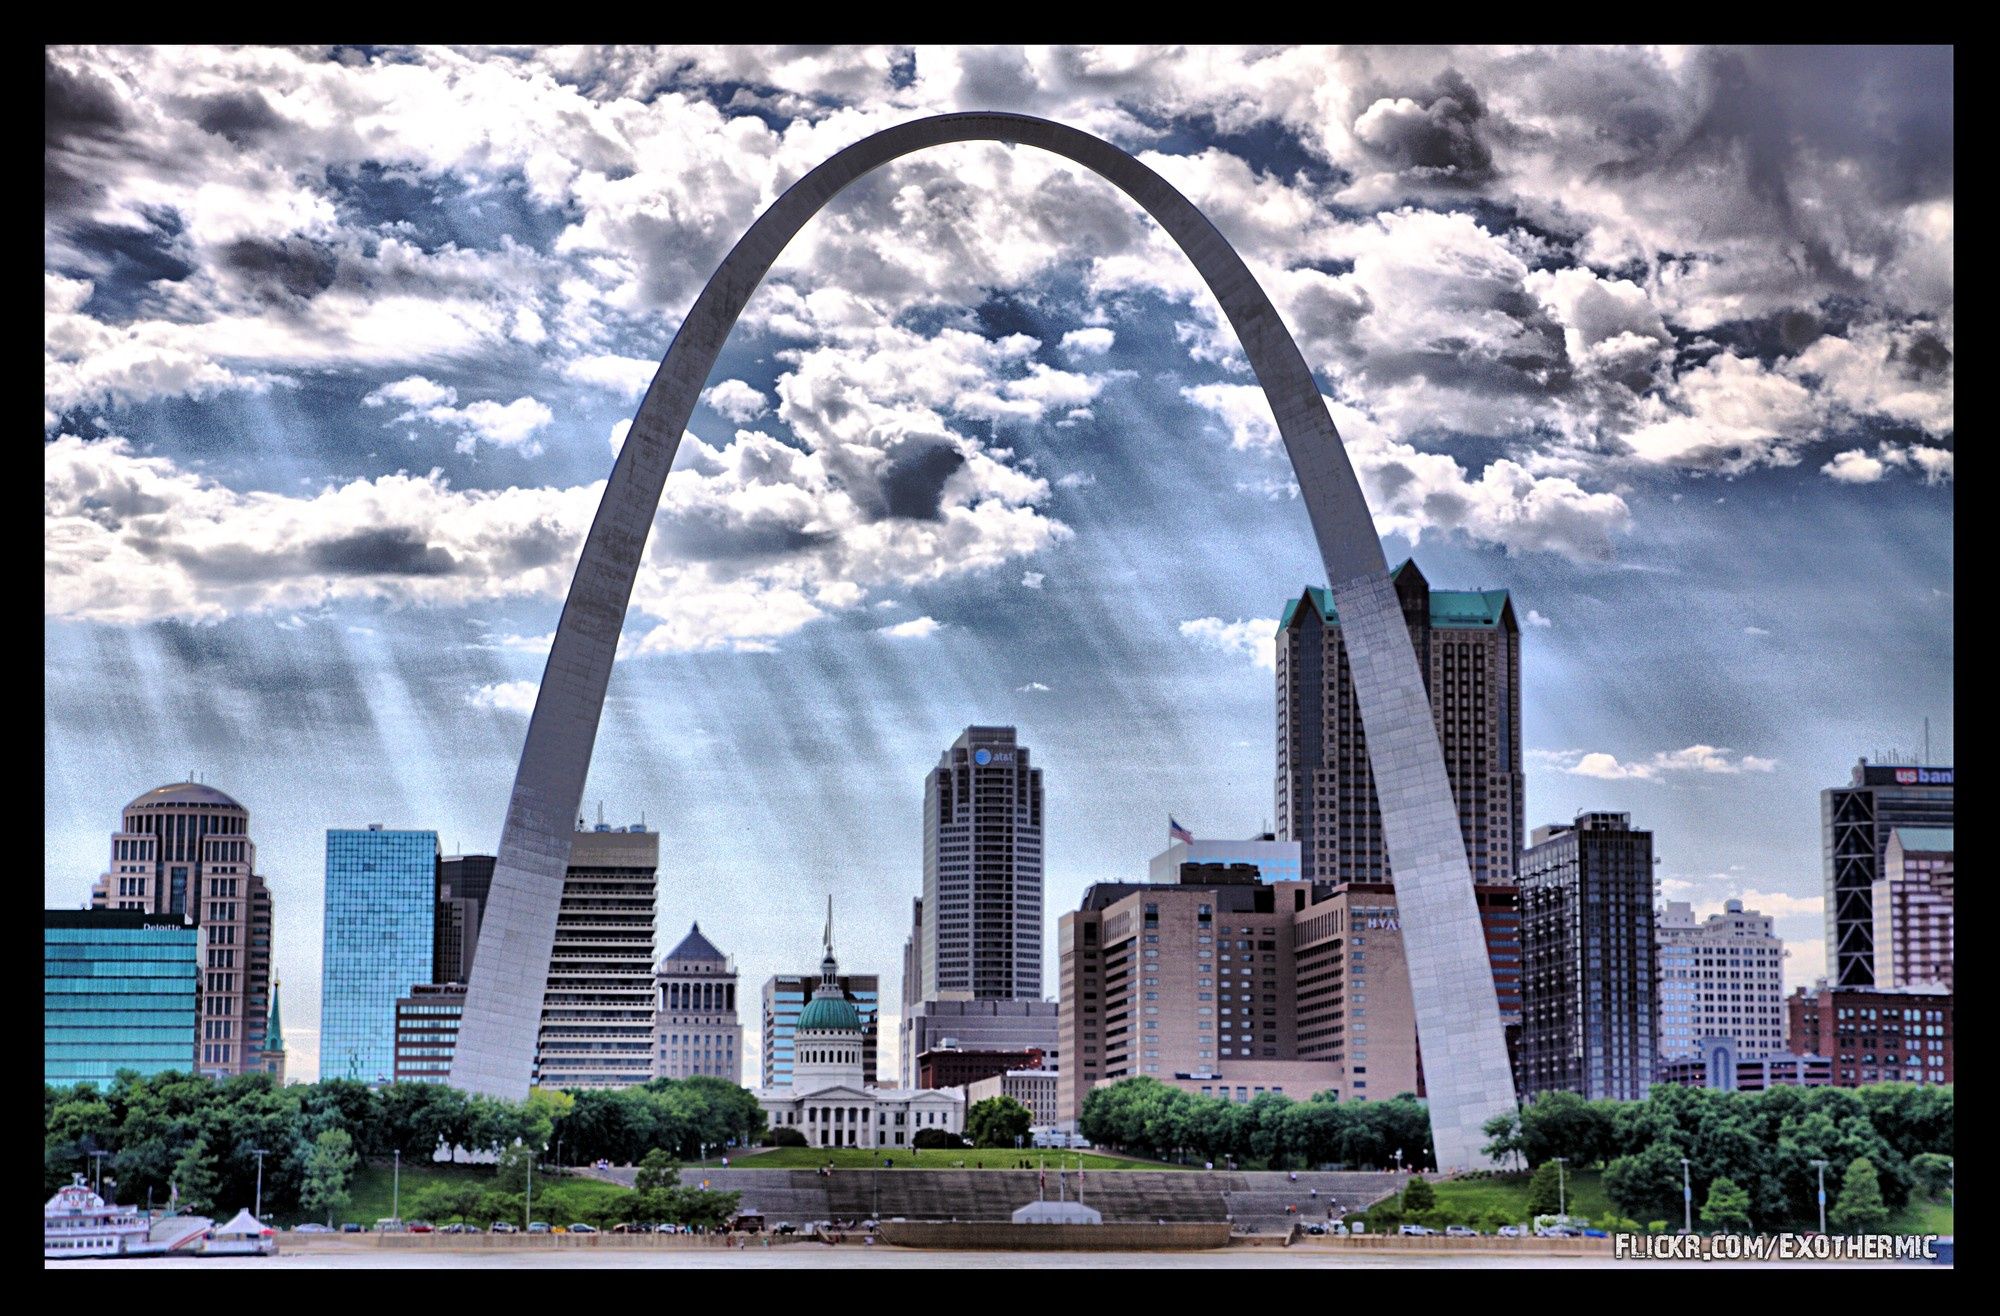 Ad classics gateway arch eero saarinen archdaily for Architect st louis mo